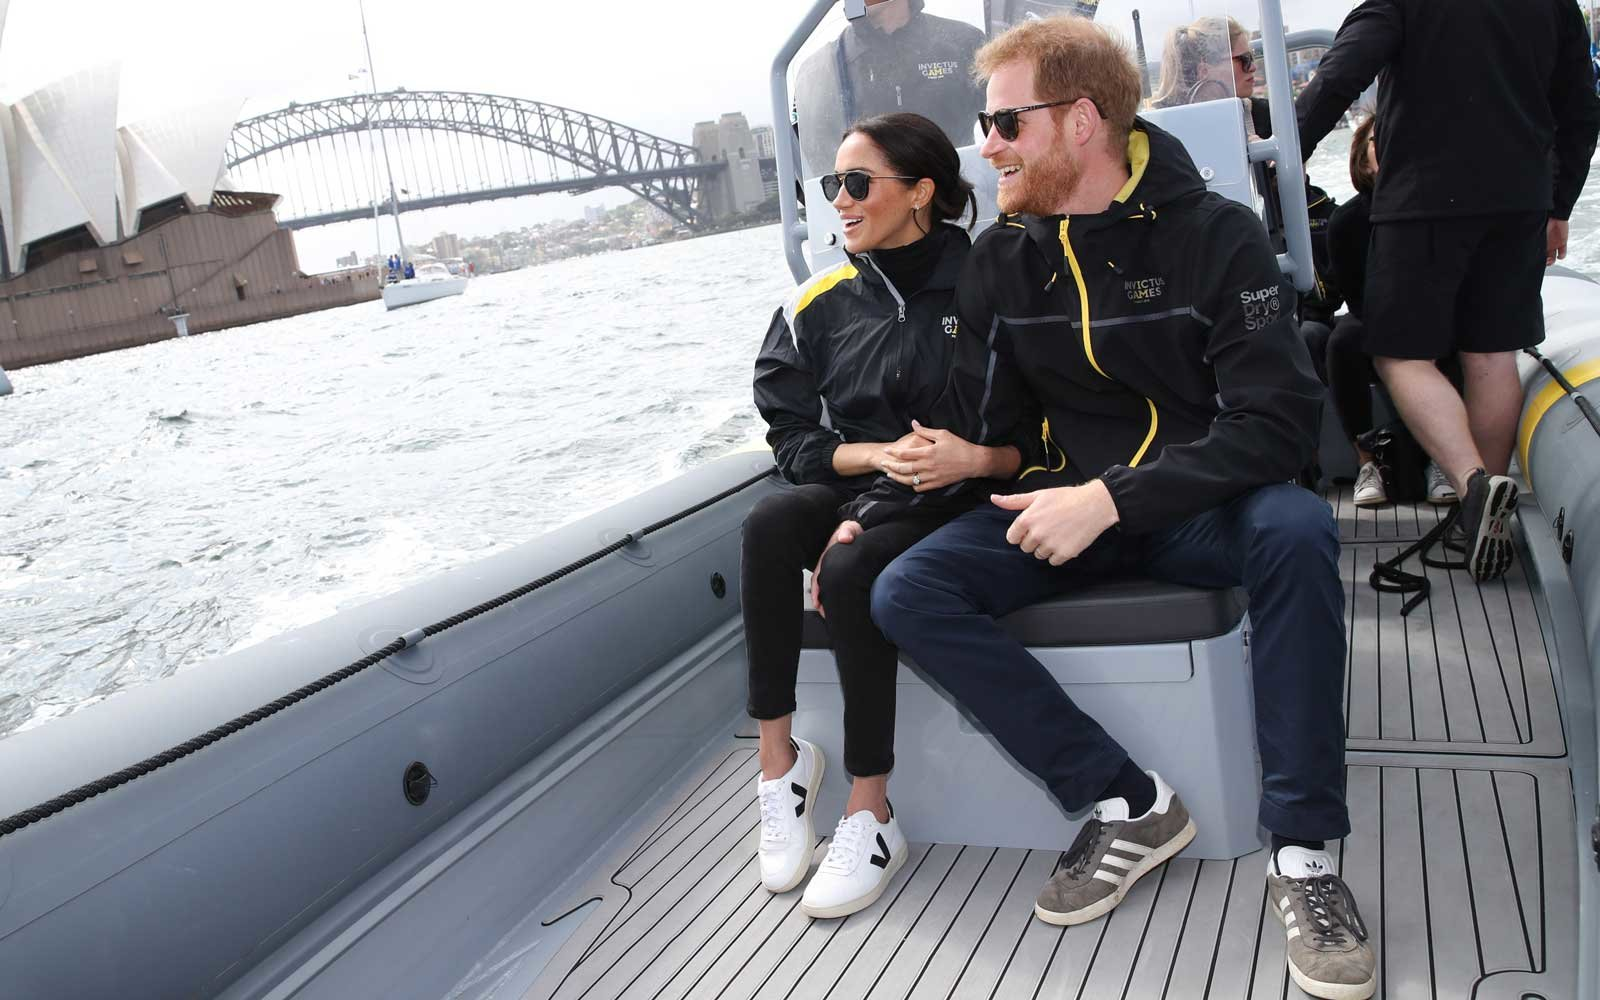 Meghan Markle and Prince Harry on a boat in Sydney, Australia